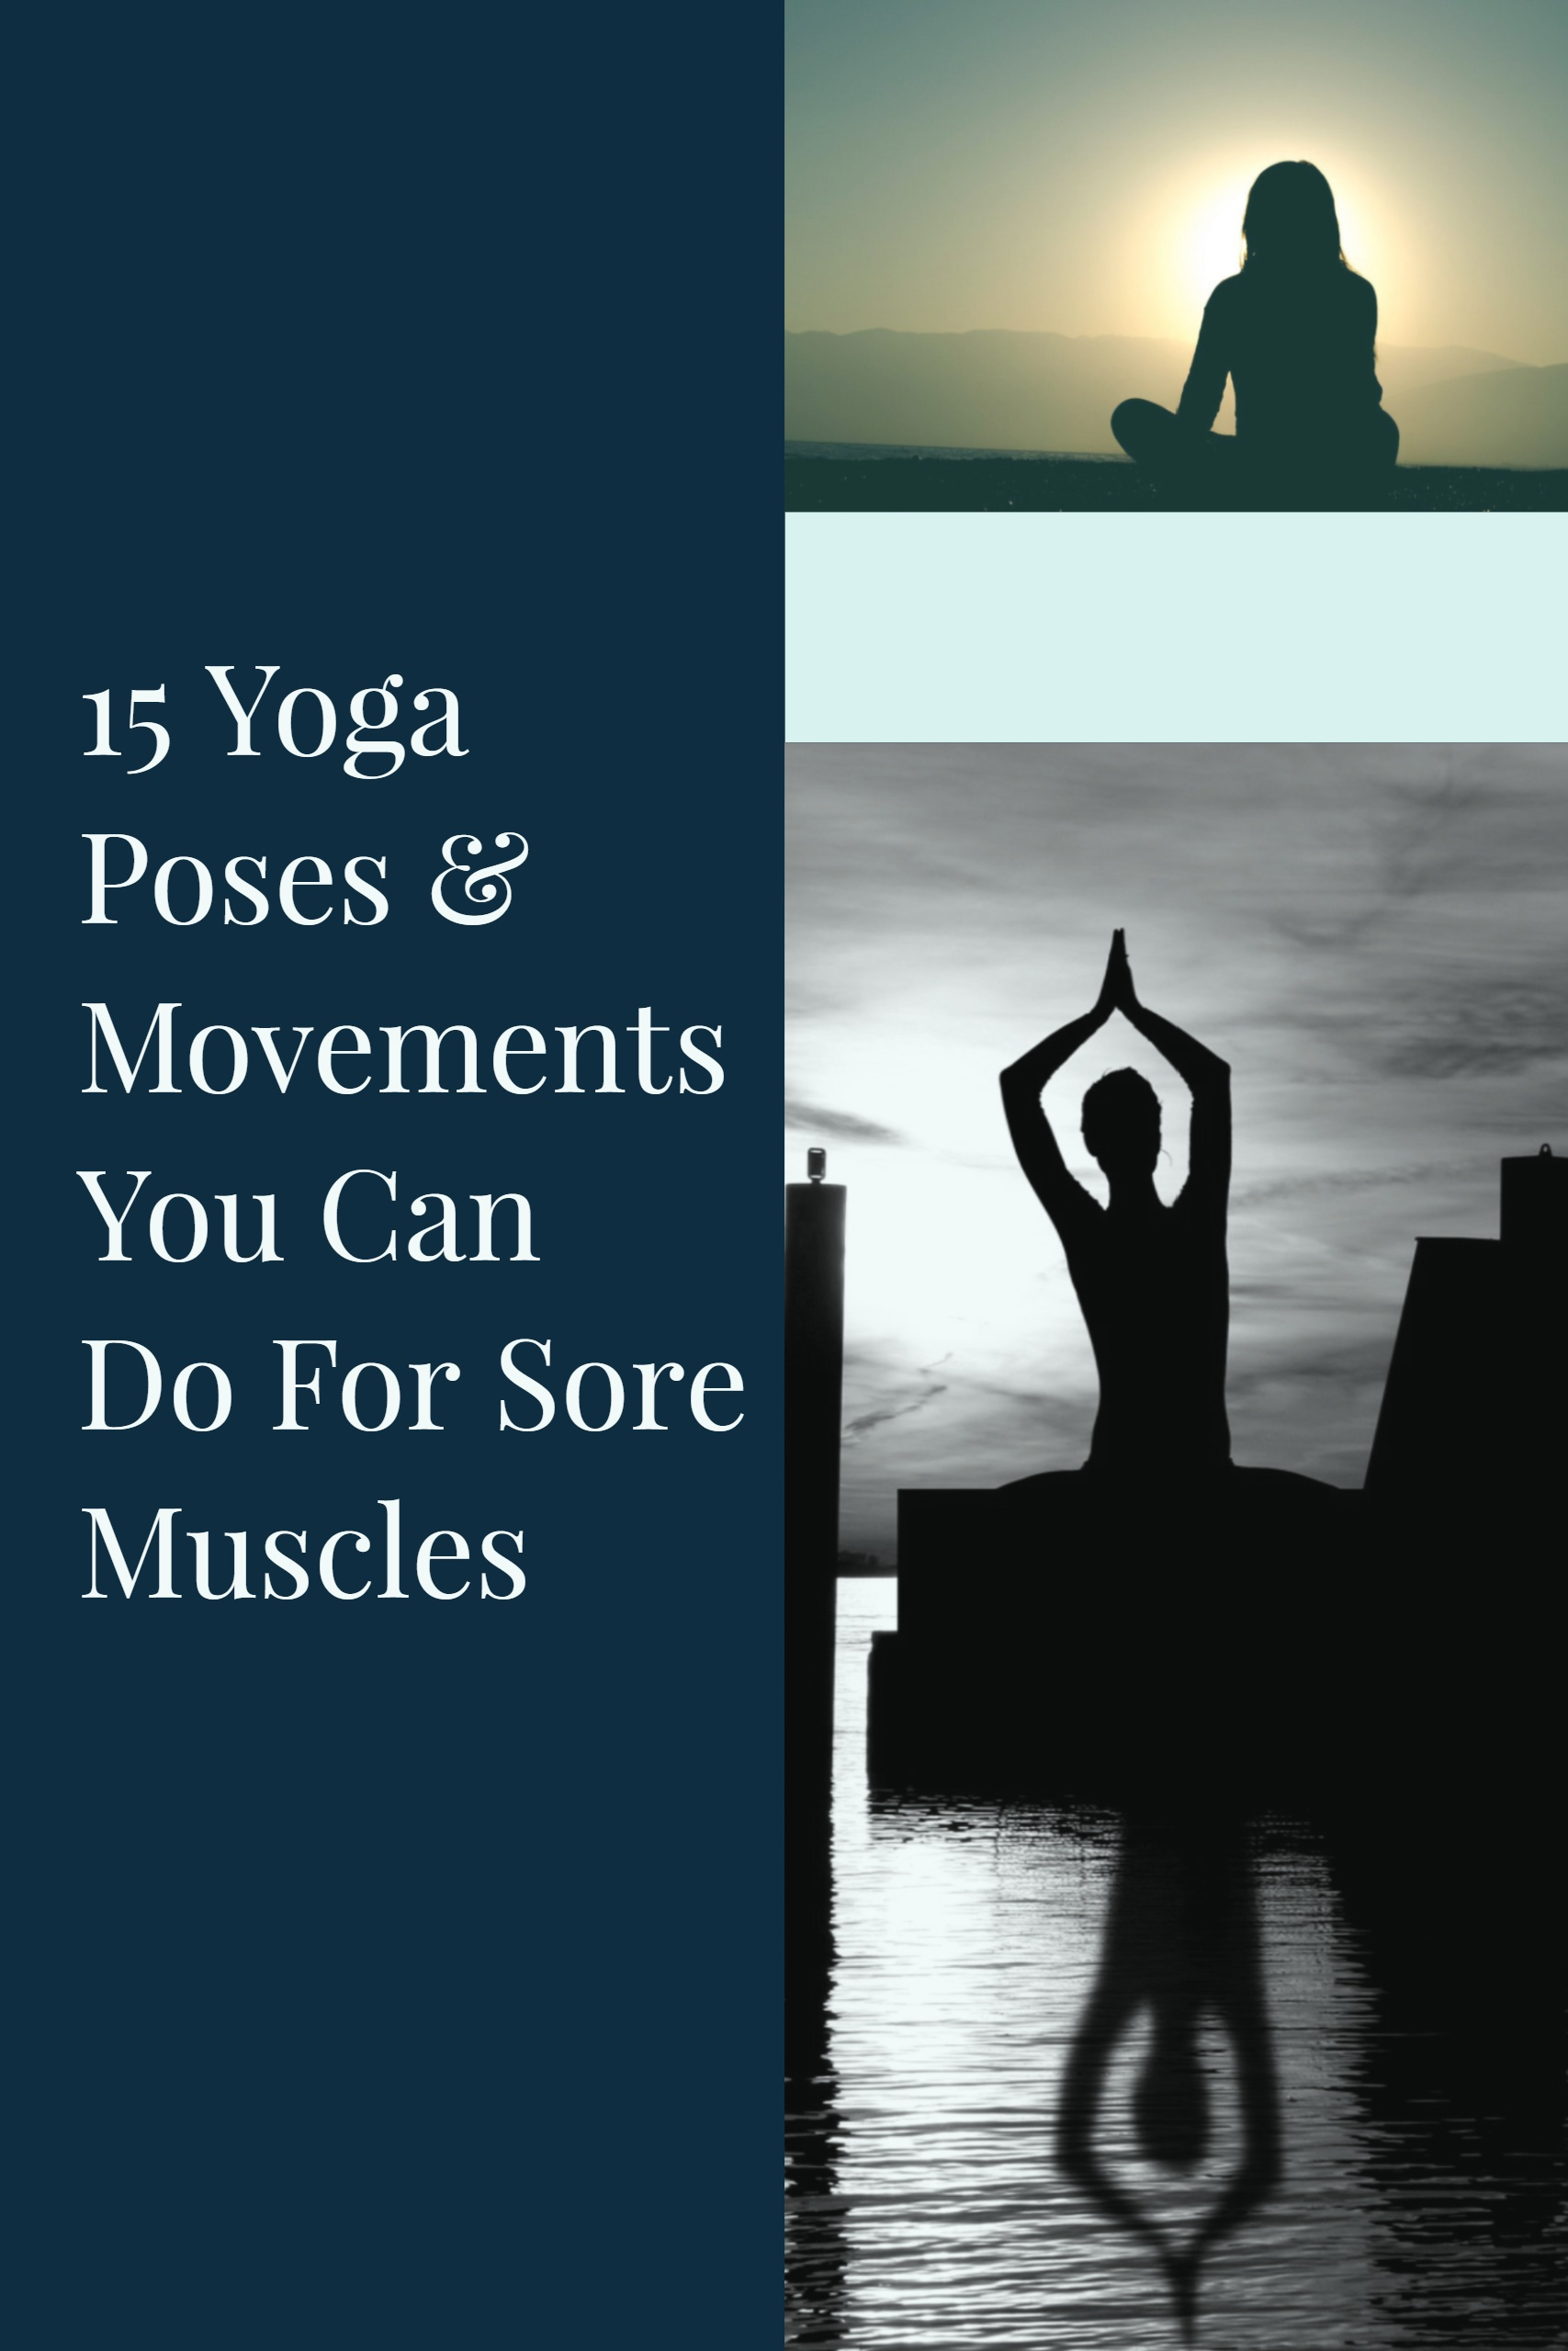 15 Yoga Poses and Movements You Can Do For Sore Muscles